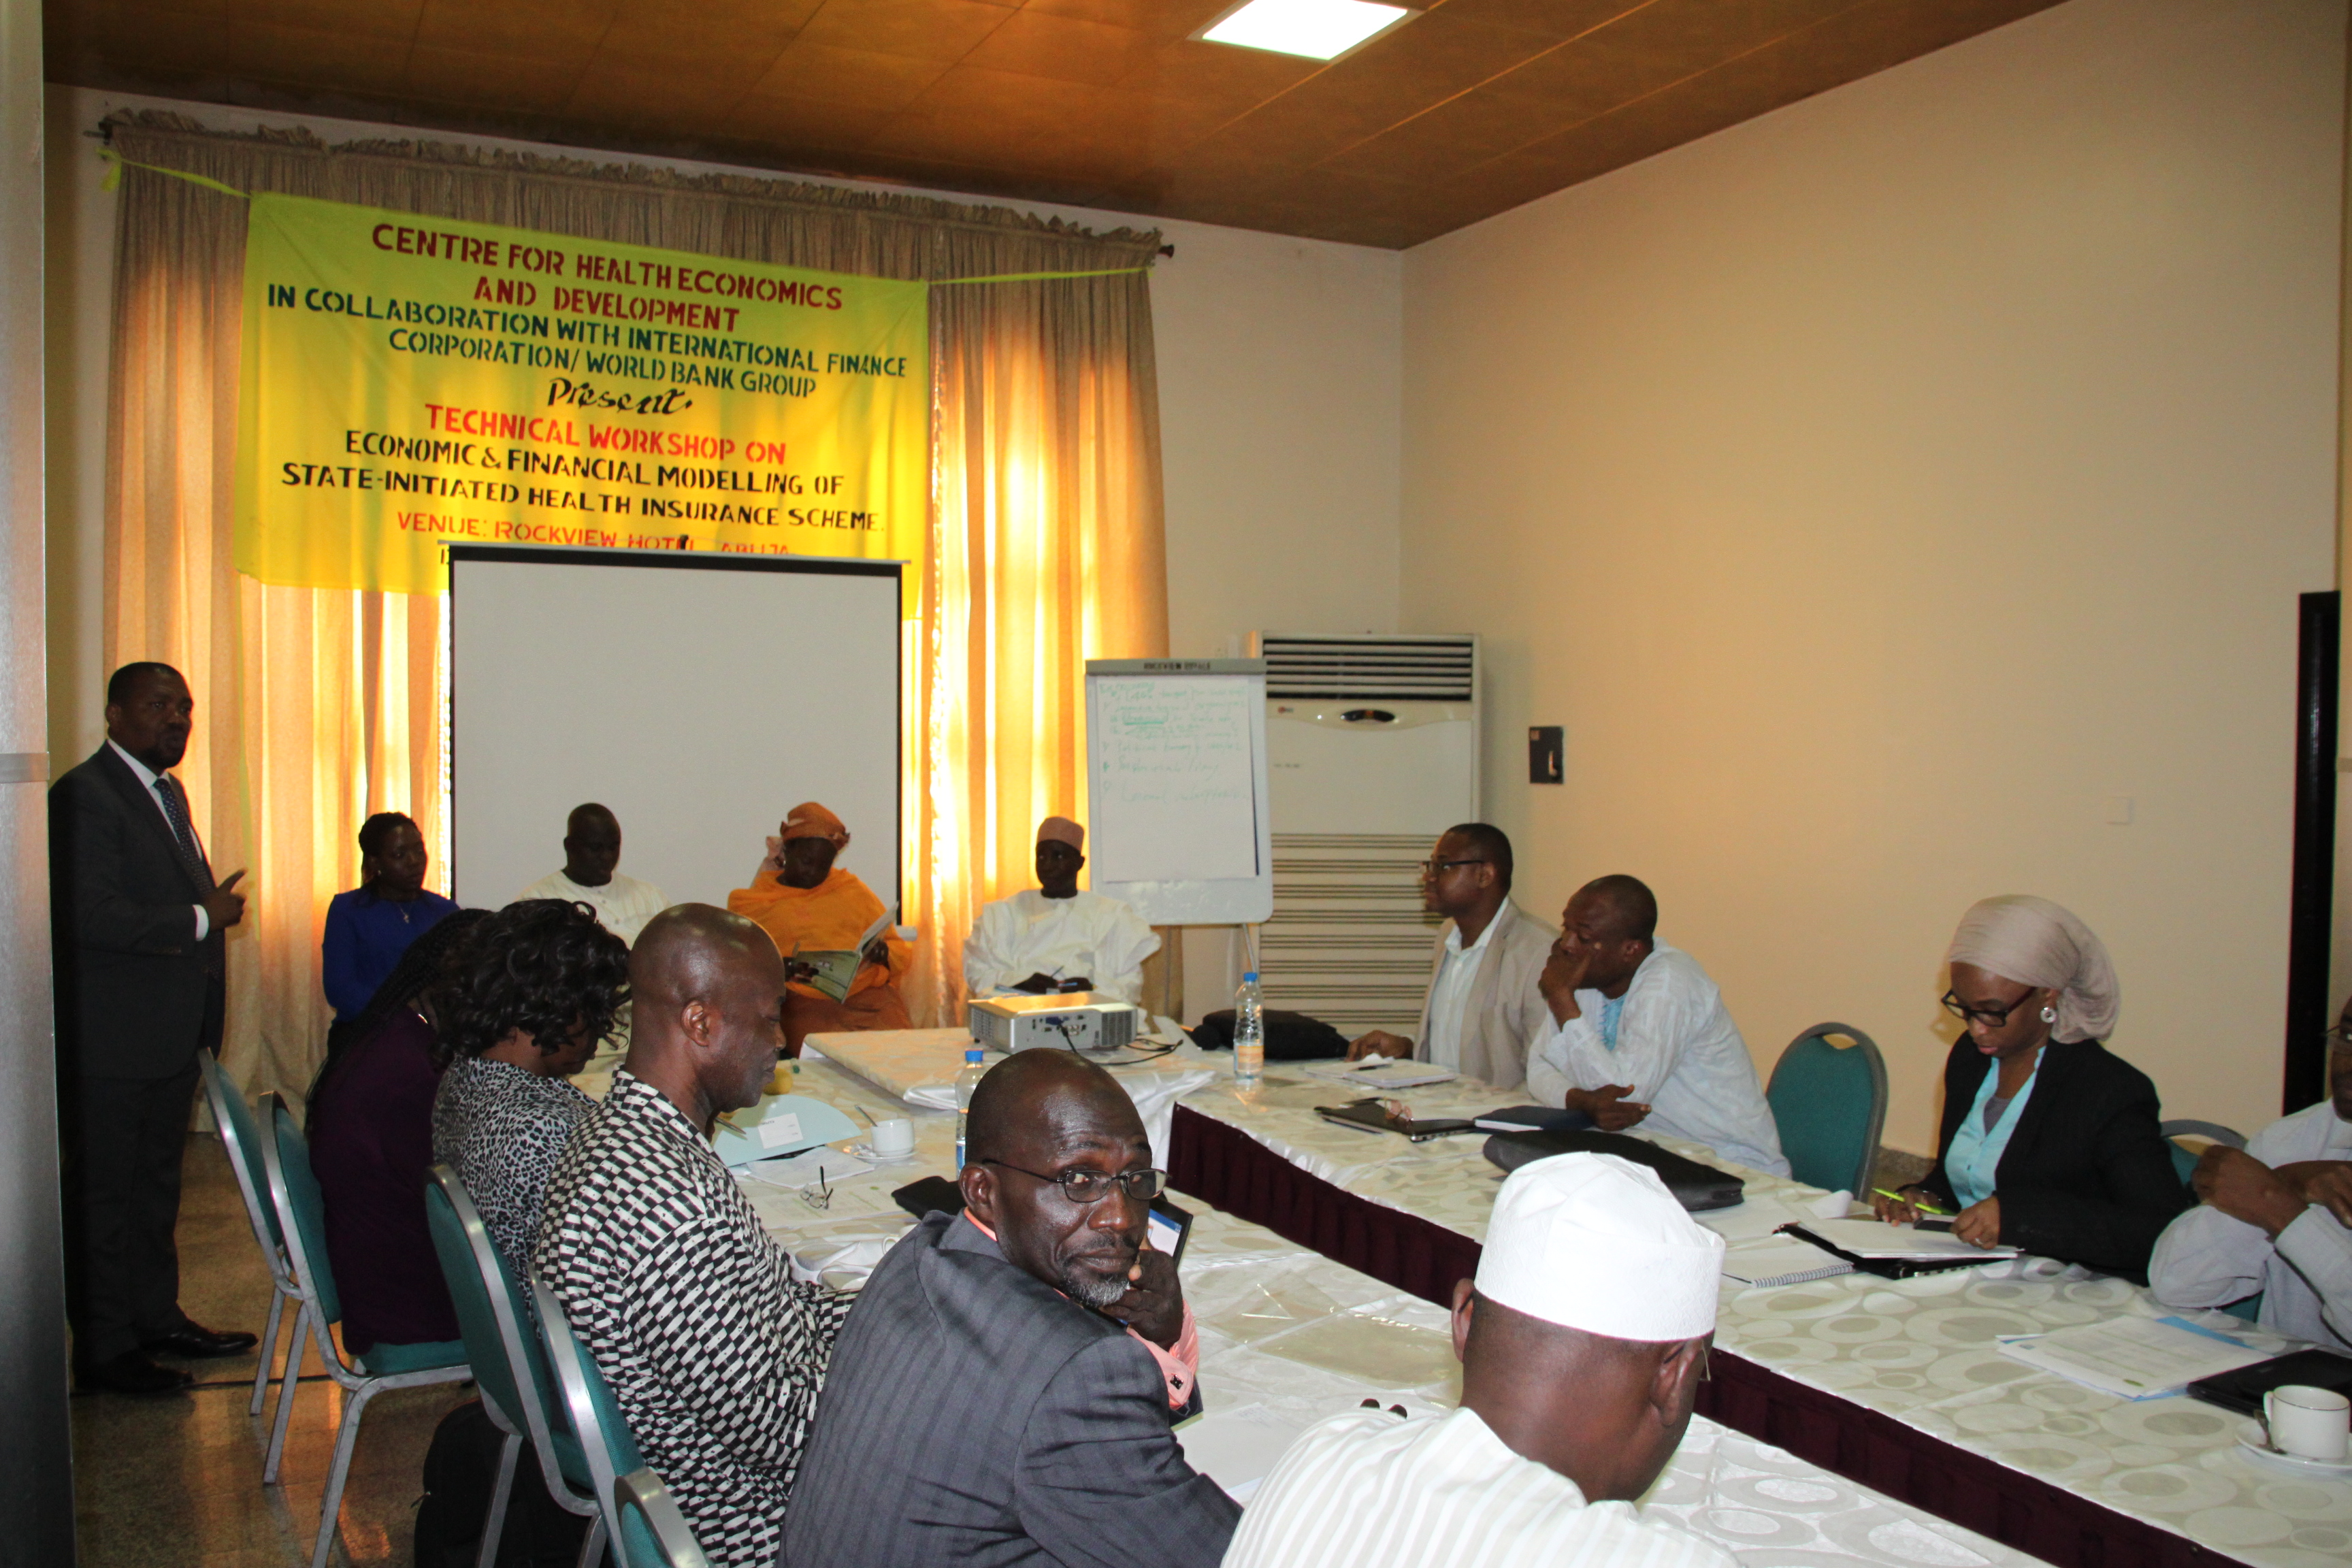 Capacity Building for NHIS Staff Lagos Ogun and Kwara SMoH on SHIS – CHECOD Centre for Health Economic and Development